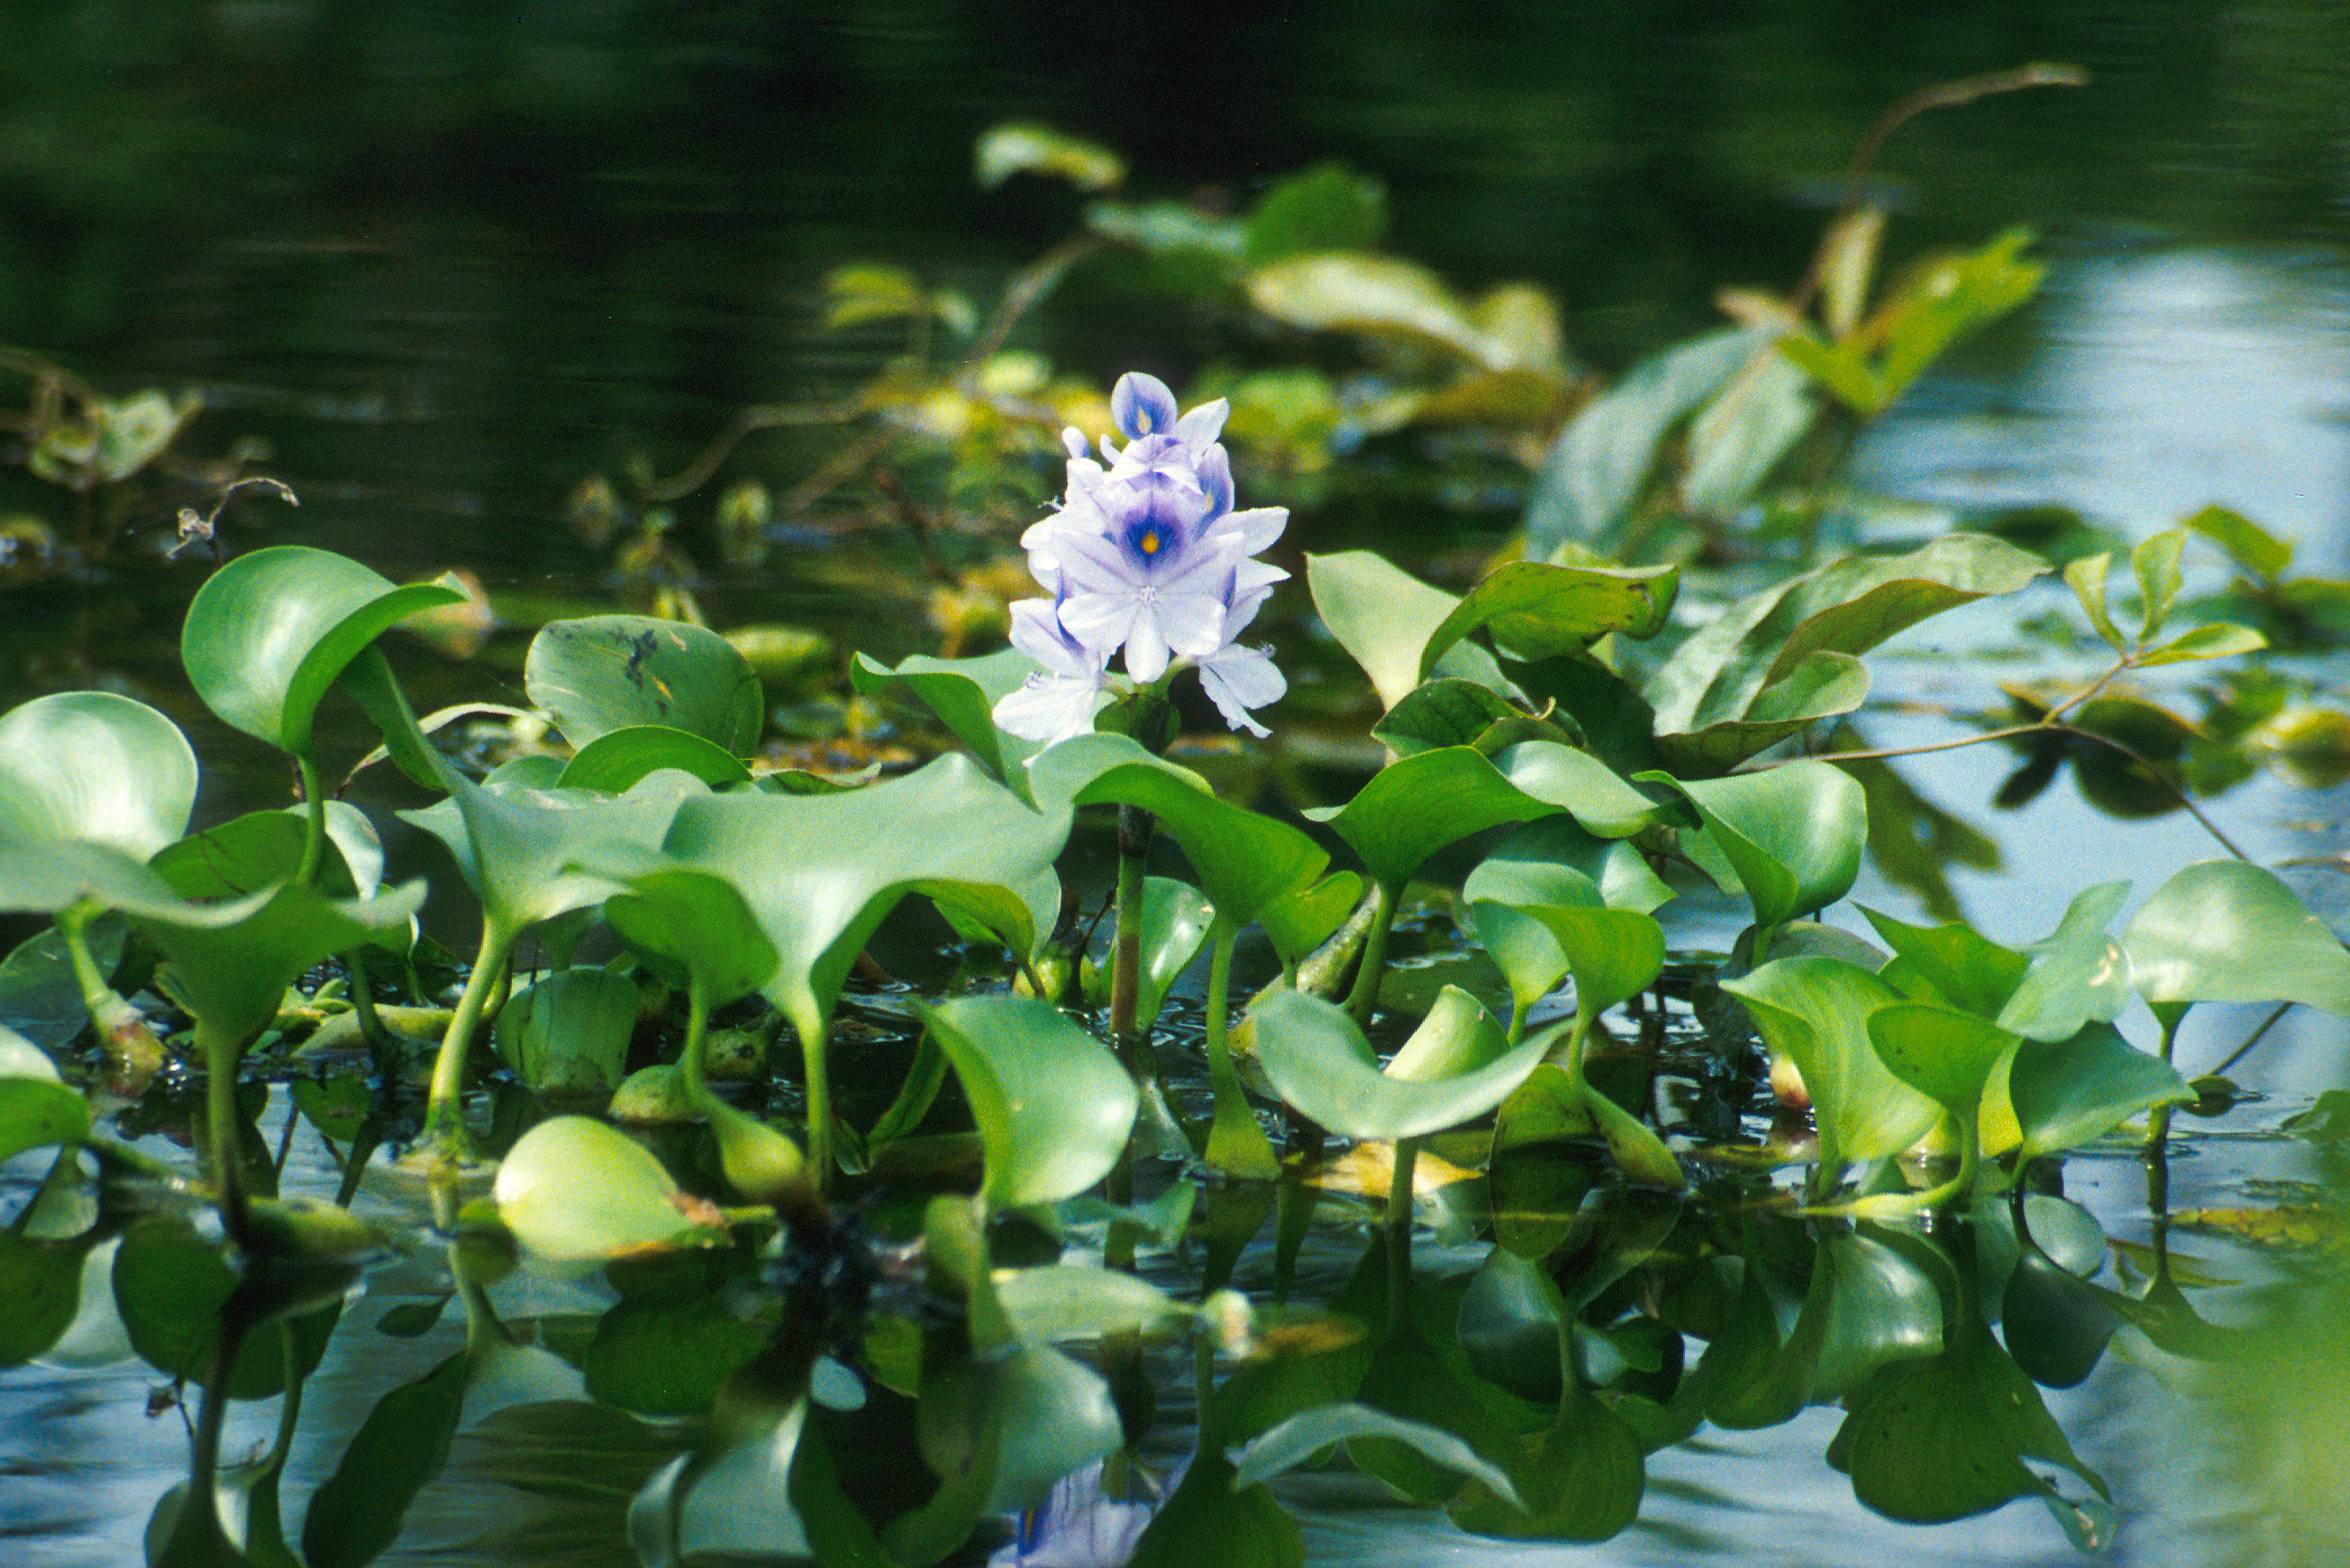 Florida's 5 most common water weeds